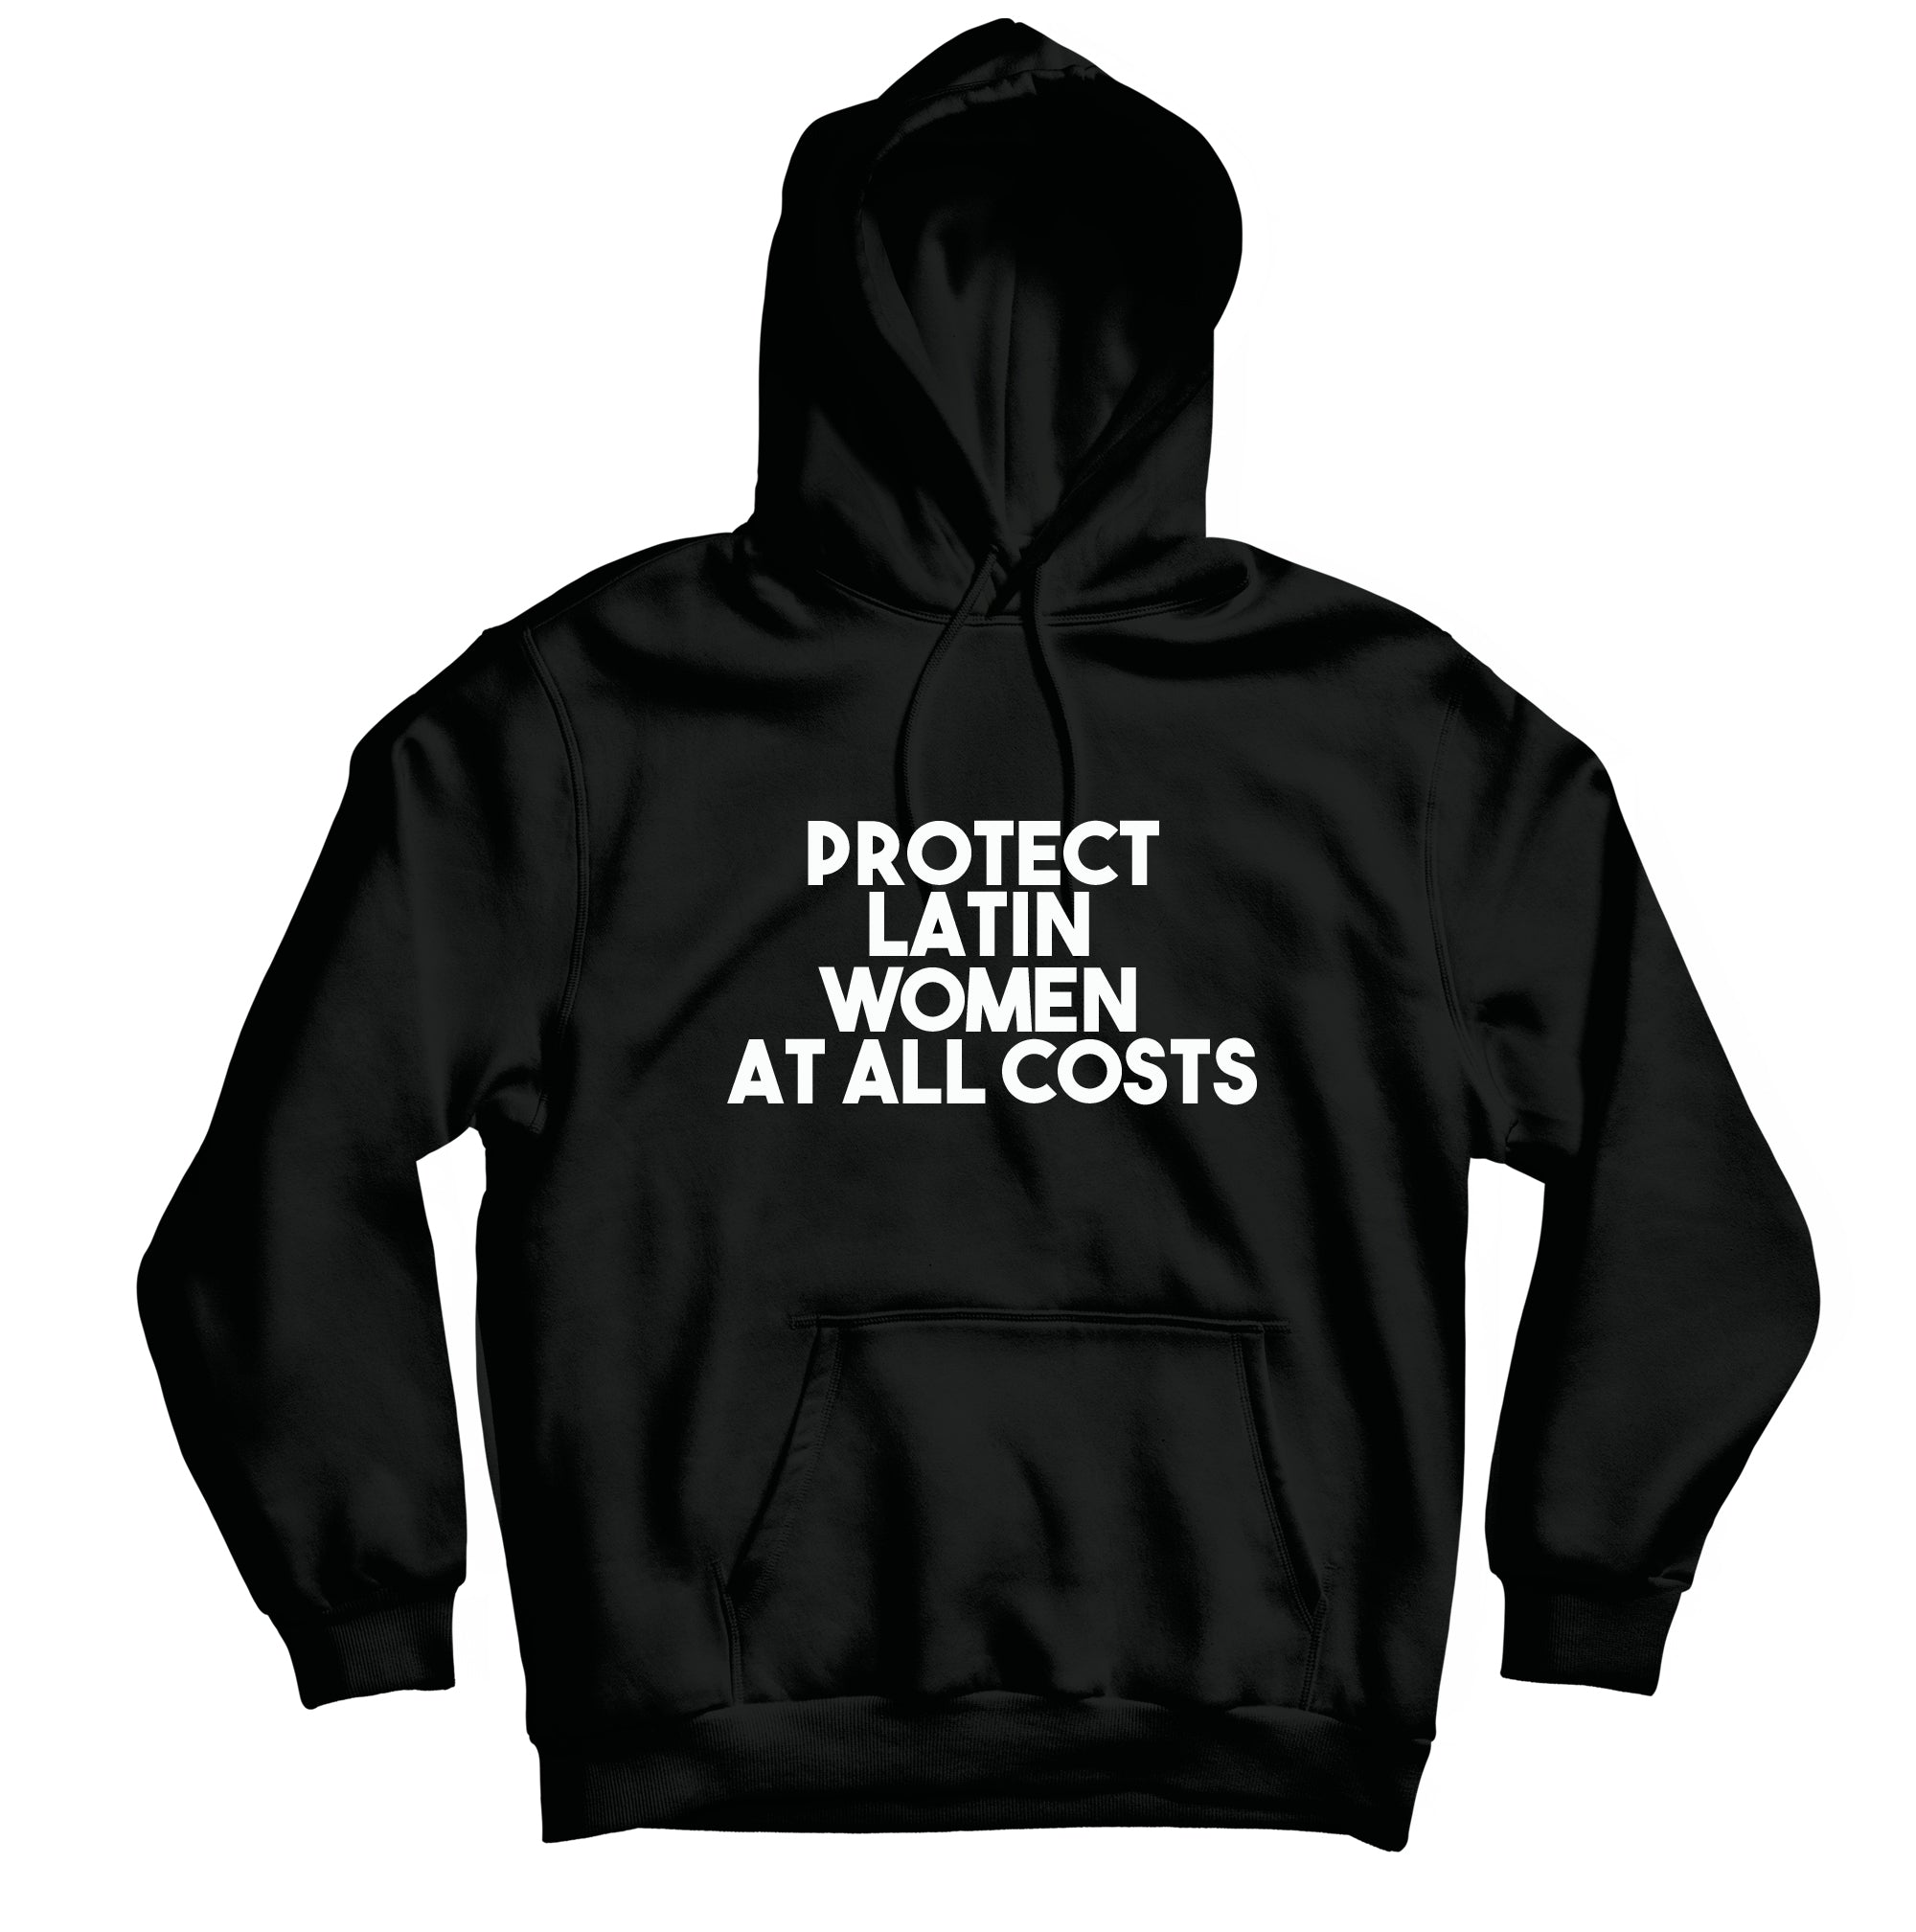 Protect Latin Women - HOODIE - TOPS, TSS CUSTOM GRPHX, SNEAKER STUDIO, GOLDEN GILT, DESIGN BY TSS